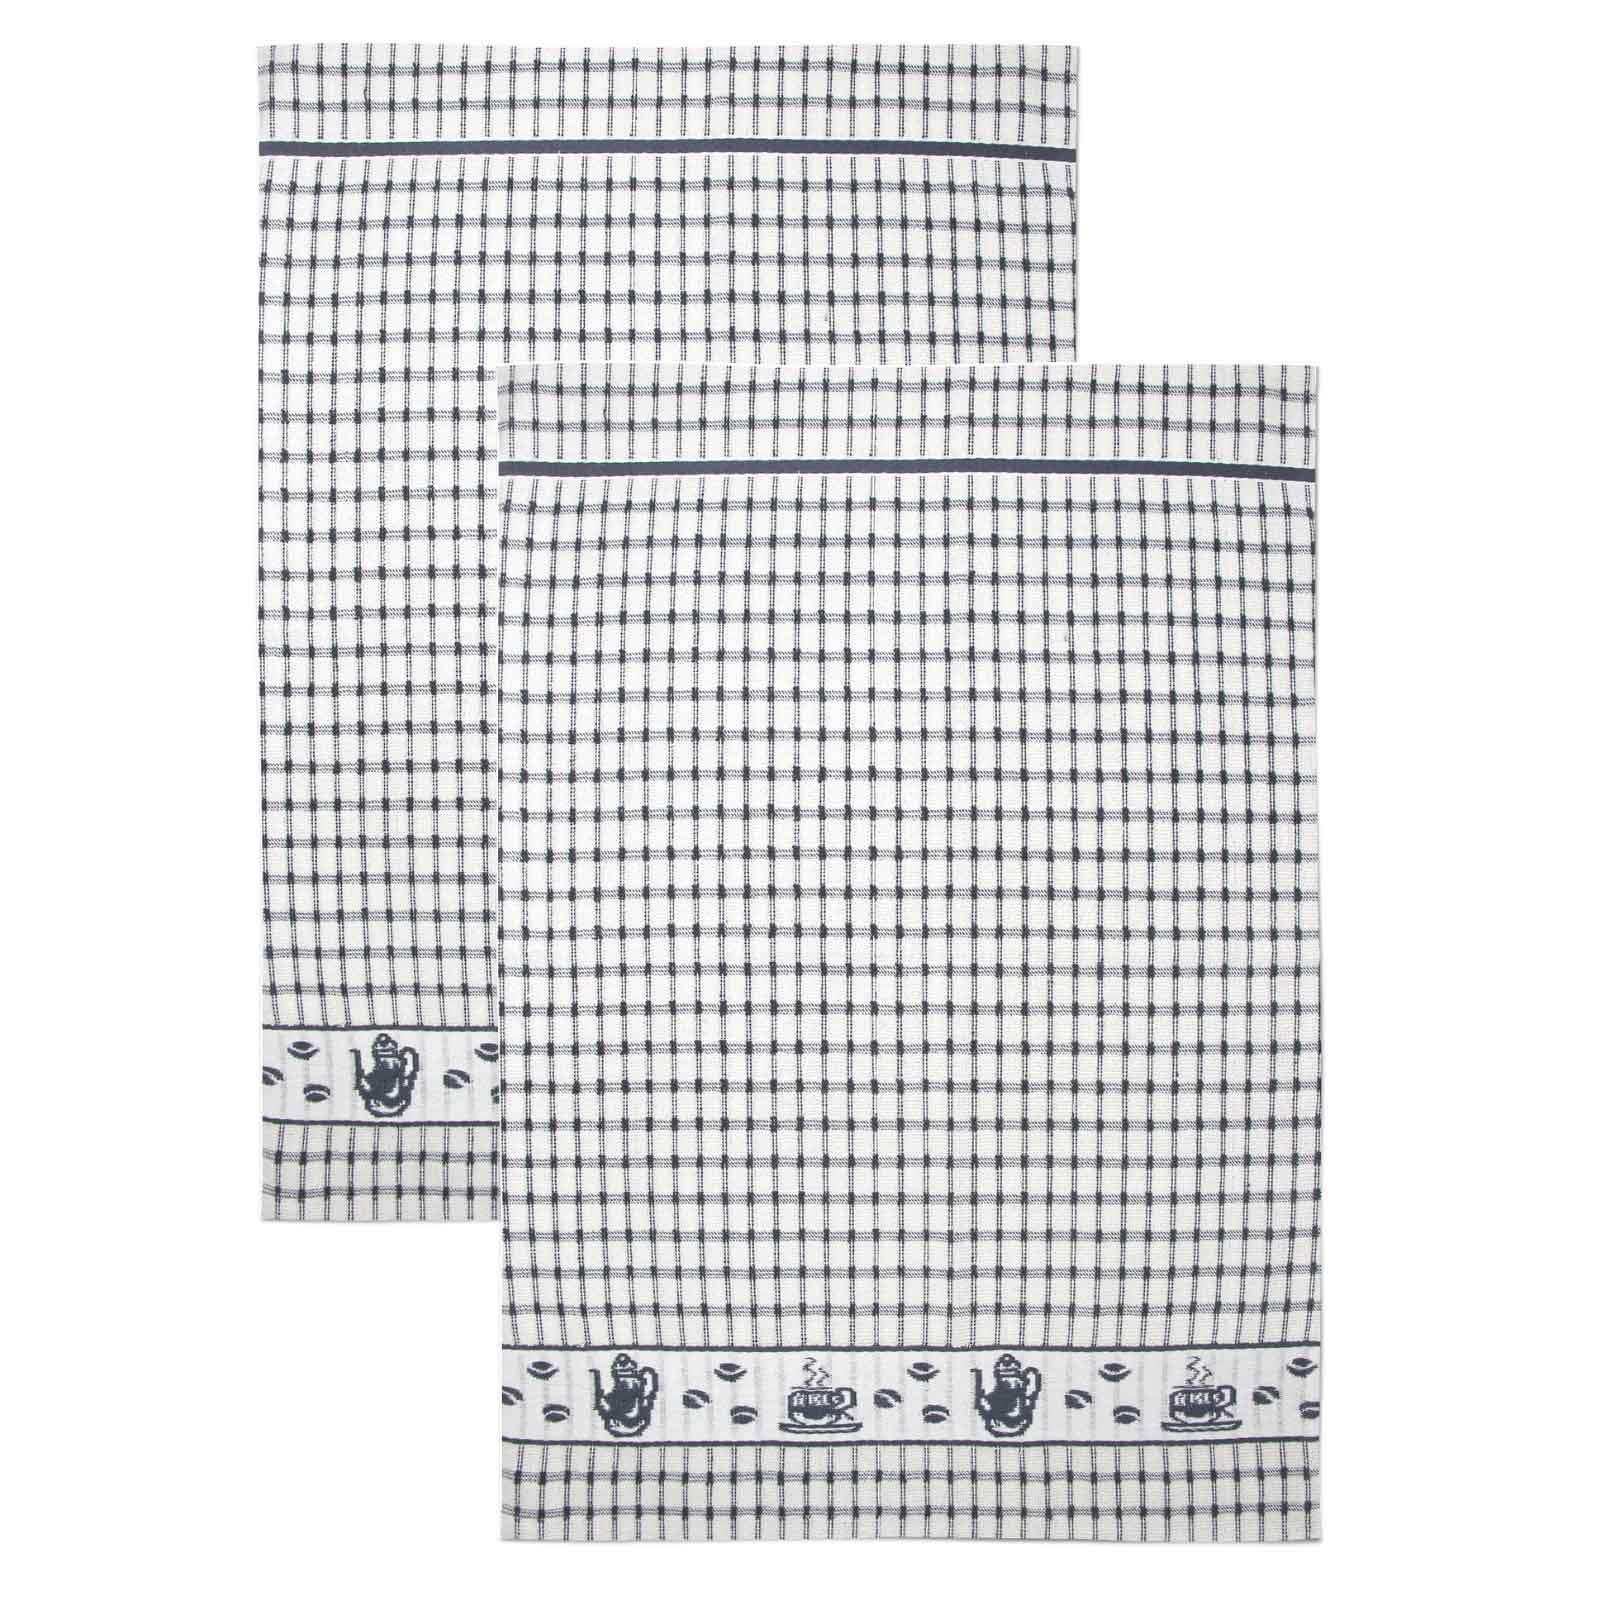 Packs-of-2-4-6-12-Tea-Towels-100-Cotton-Terry-Kitchen-Dish-Drying-Towel-Sets thumbnail 10